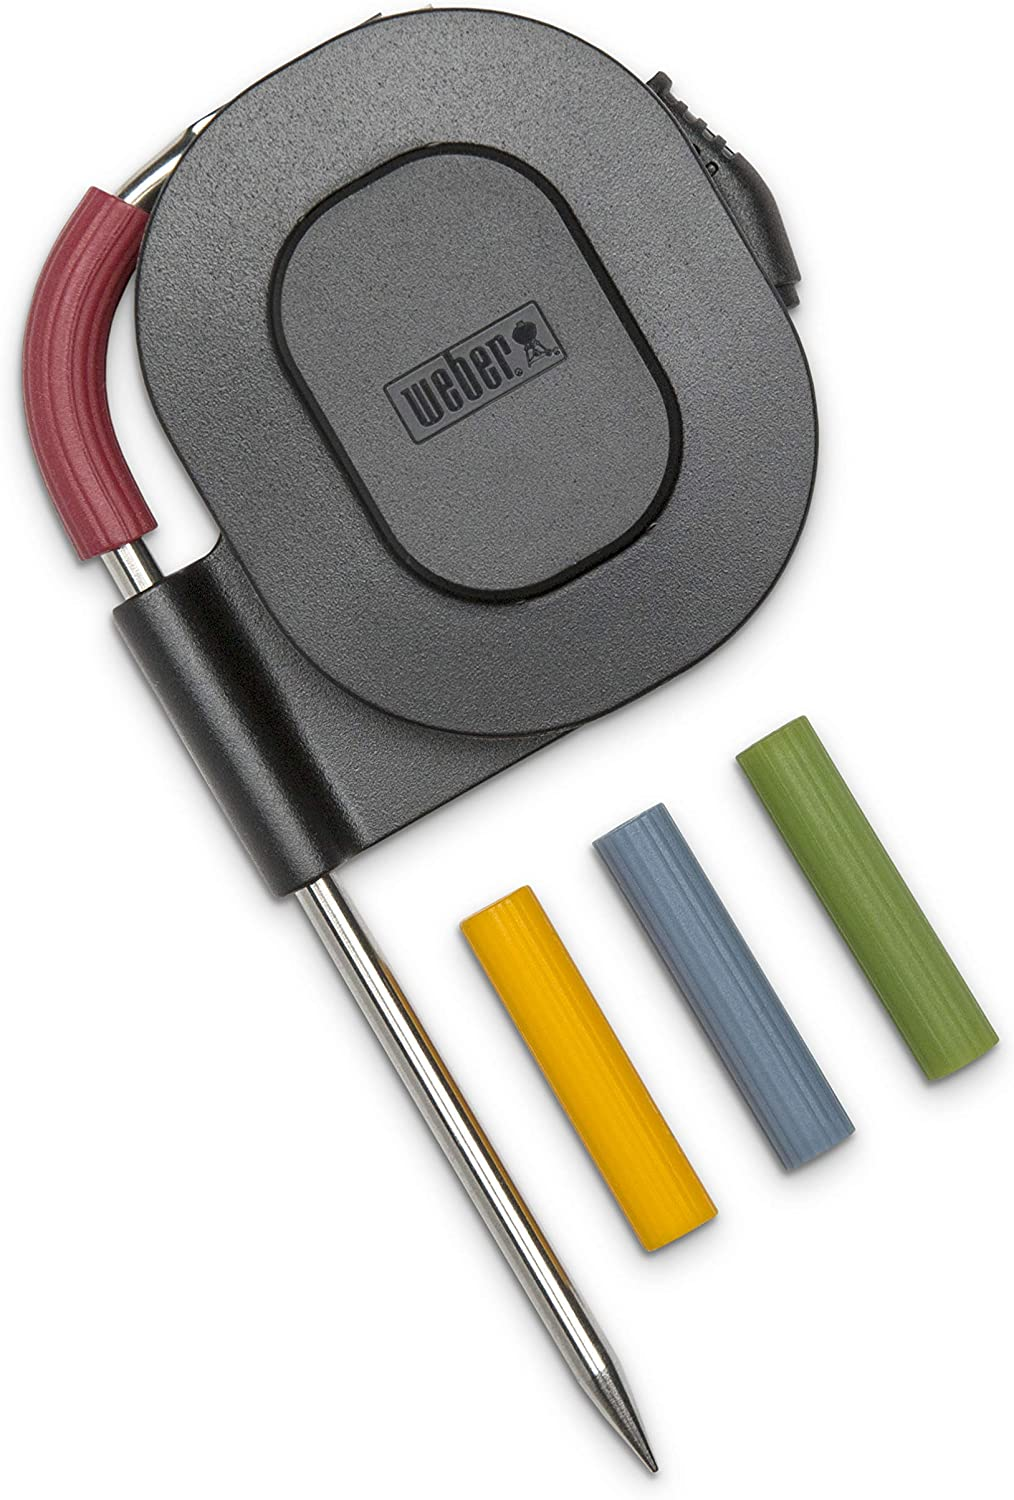 Max 47% OFF Weber Cheap mail order specialty store iGrill Pro Meat Probe